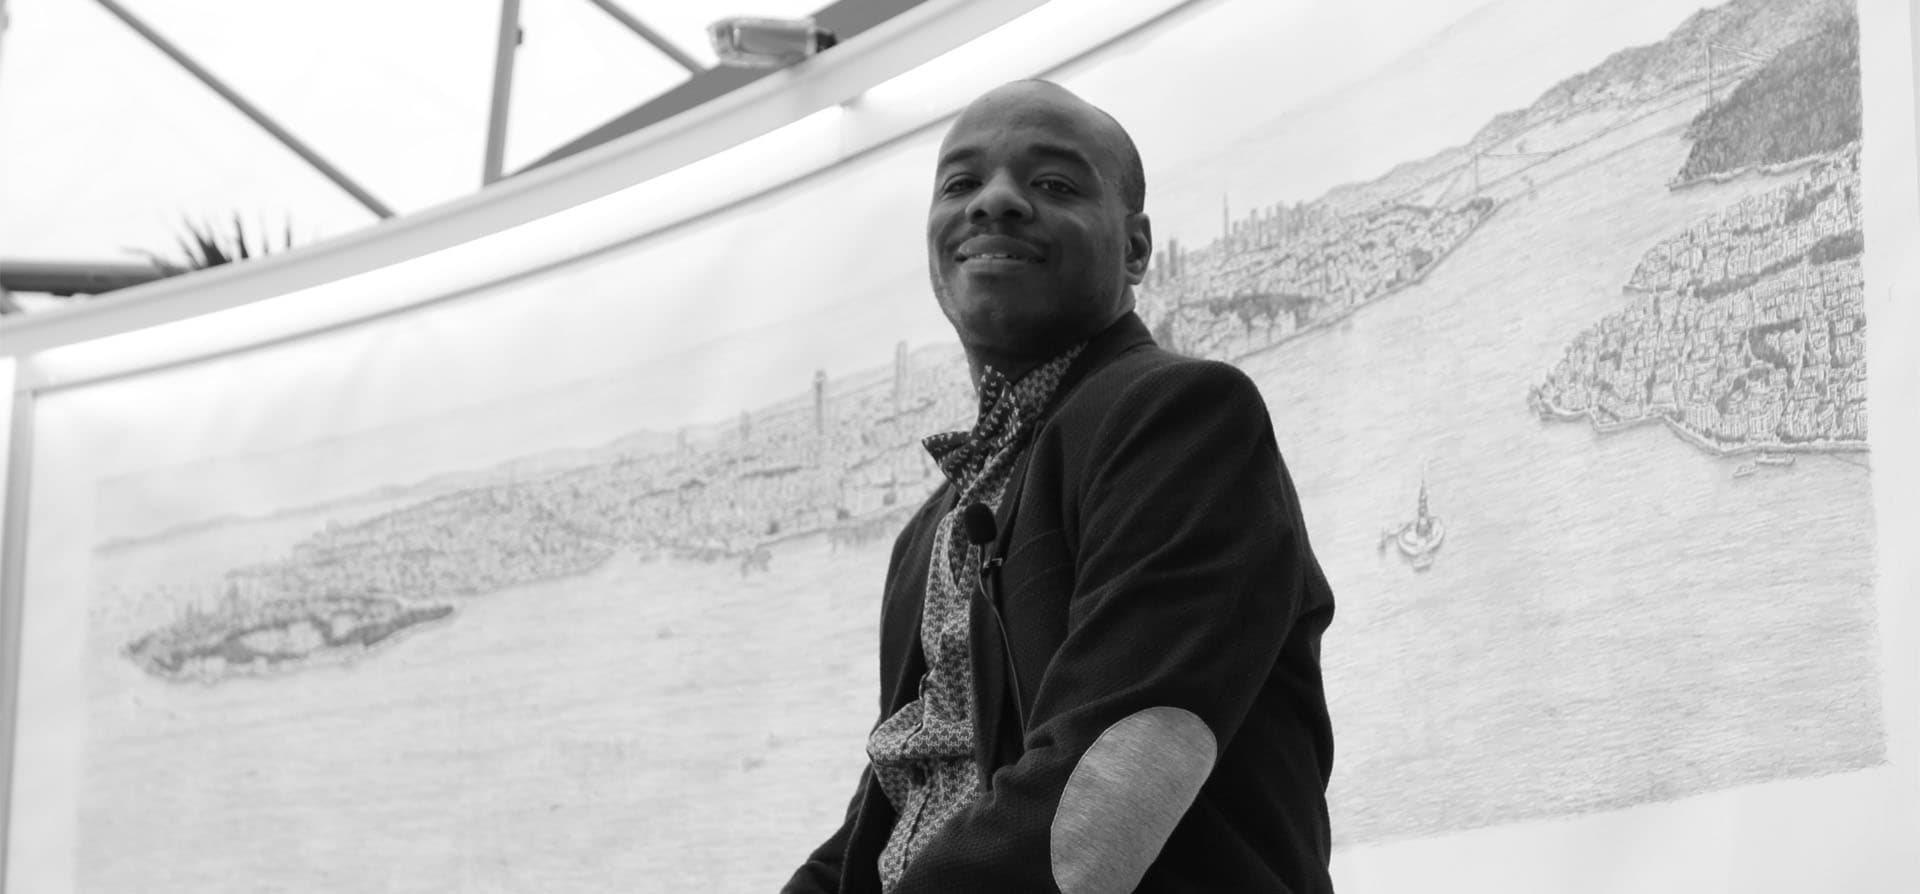 Stephen Wiltshire draws Istanbul Panorama